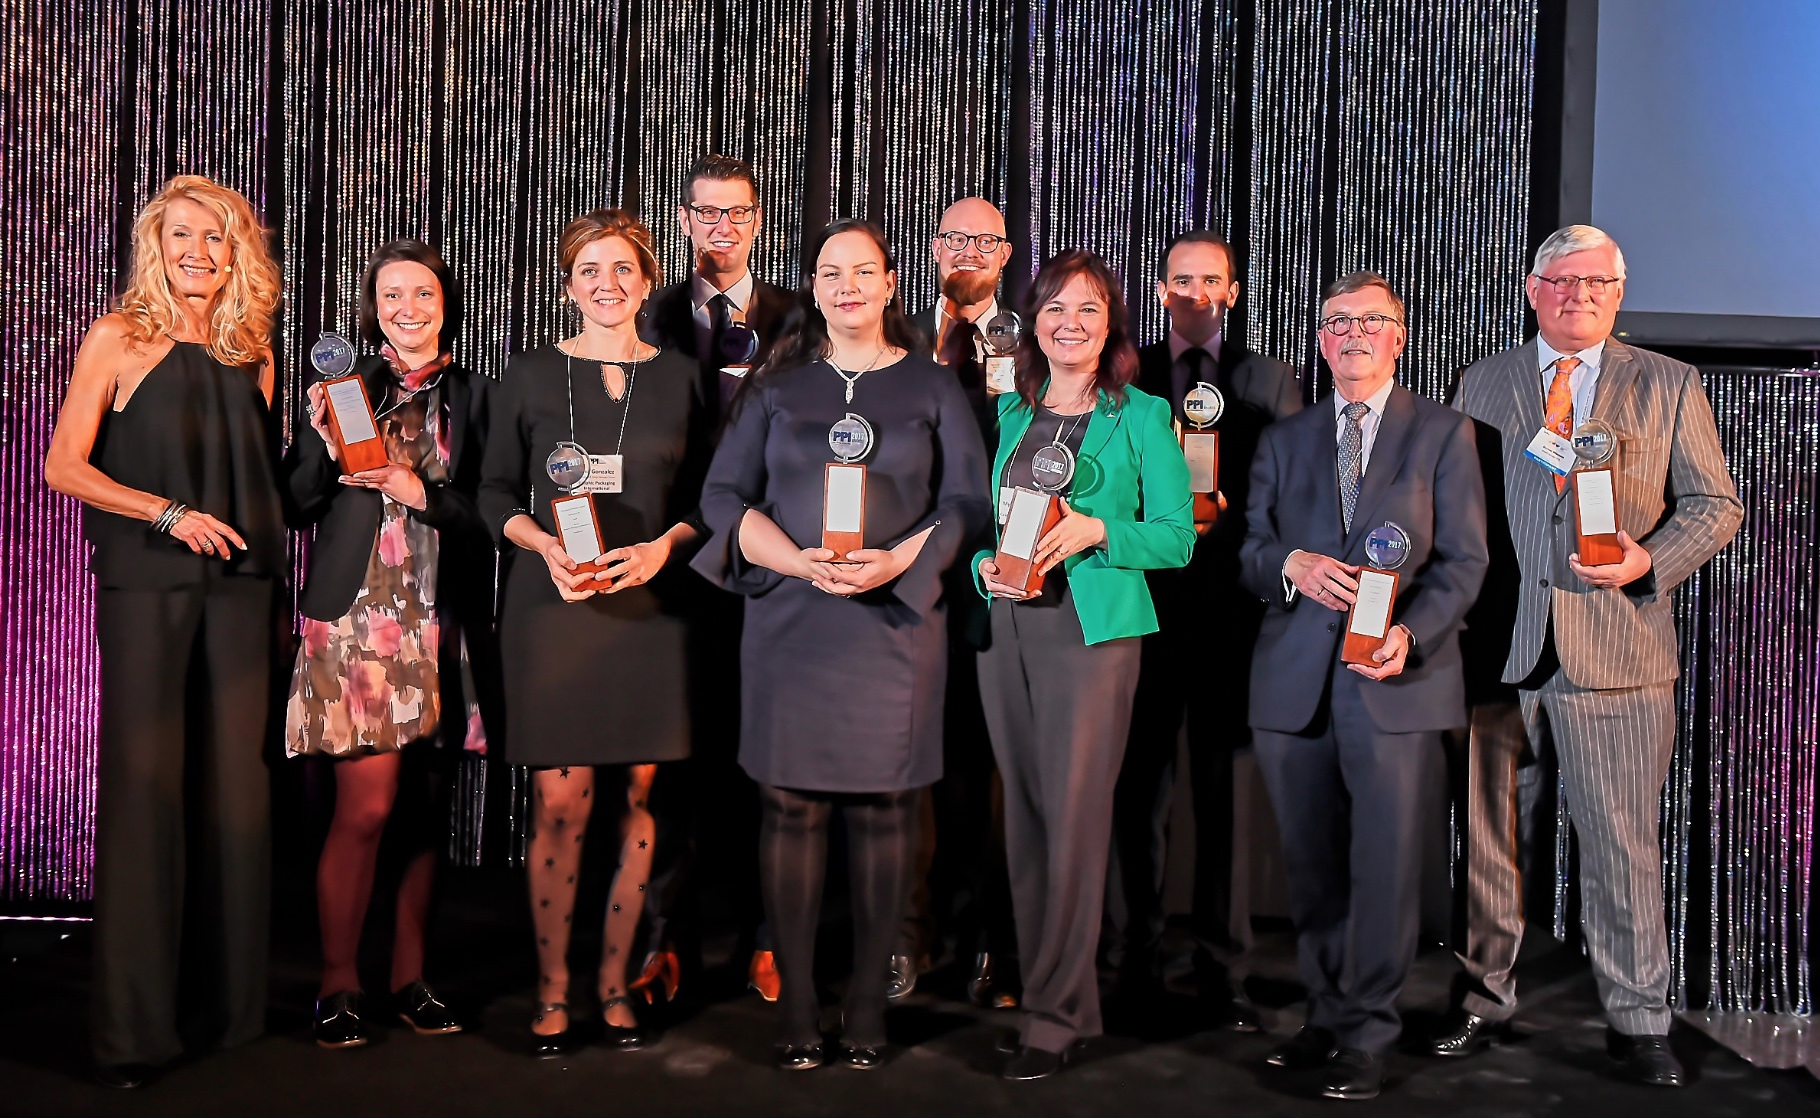 2017 PPI Award Winners Announced at CEPI European Paper Week